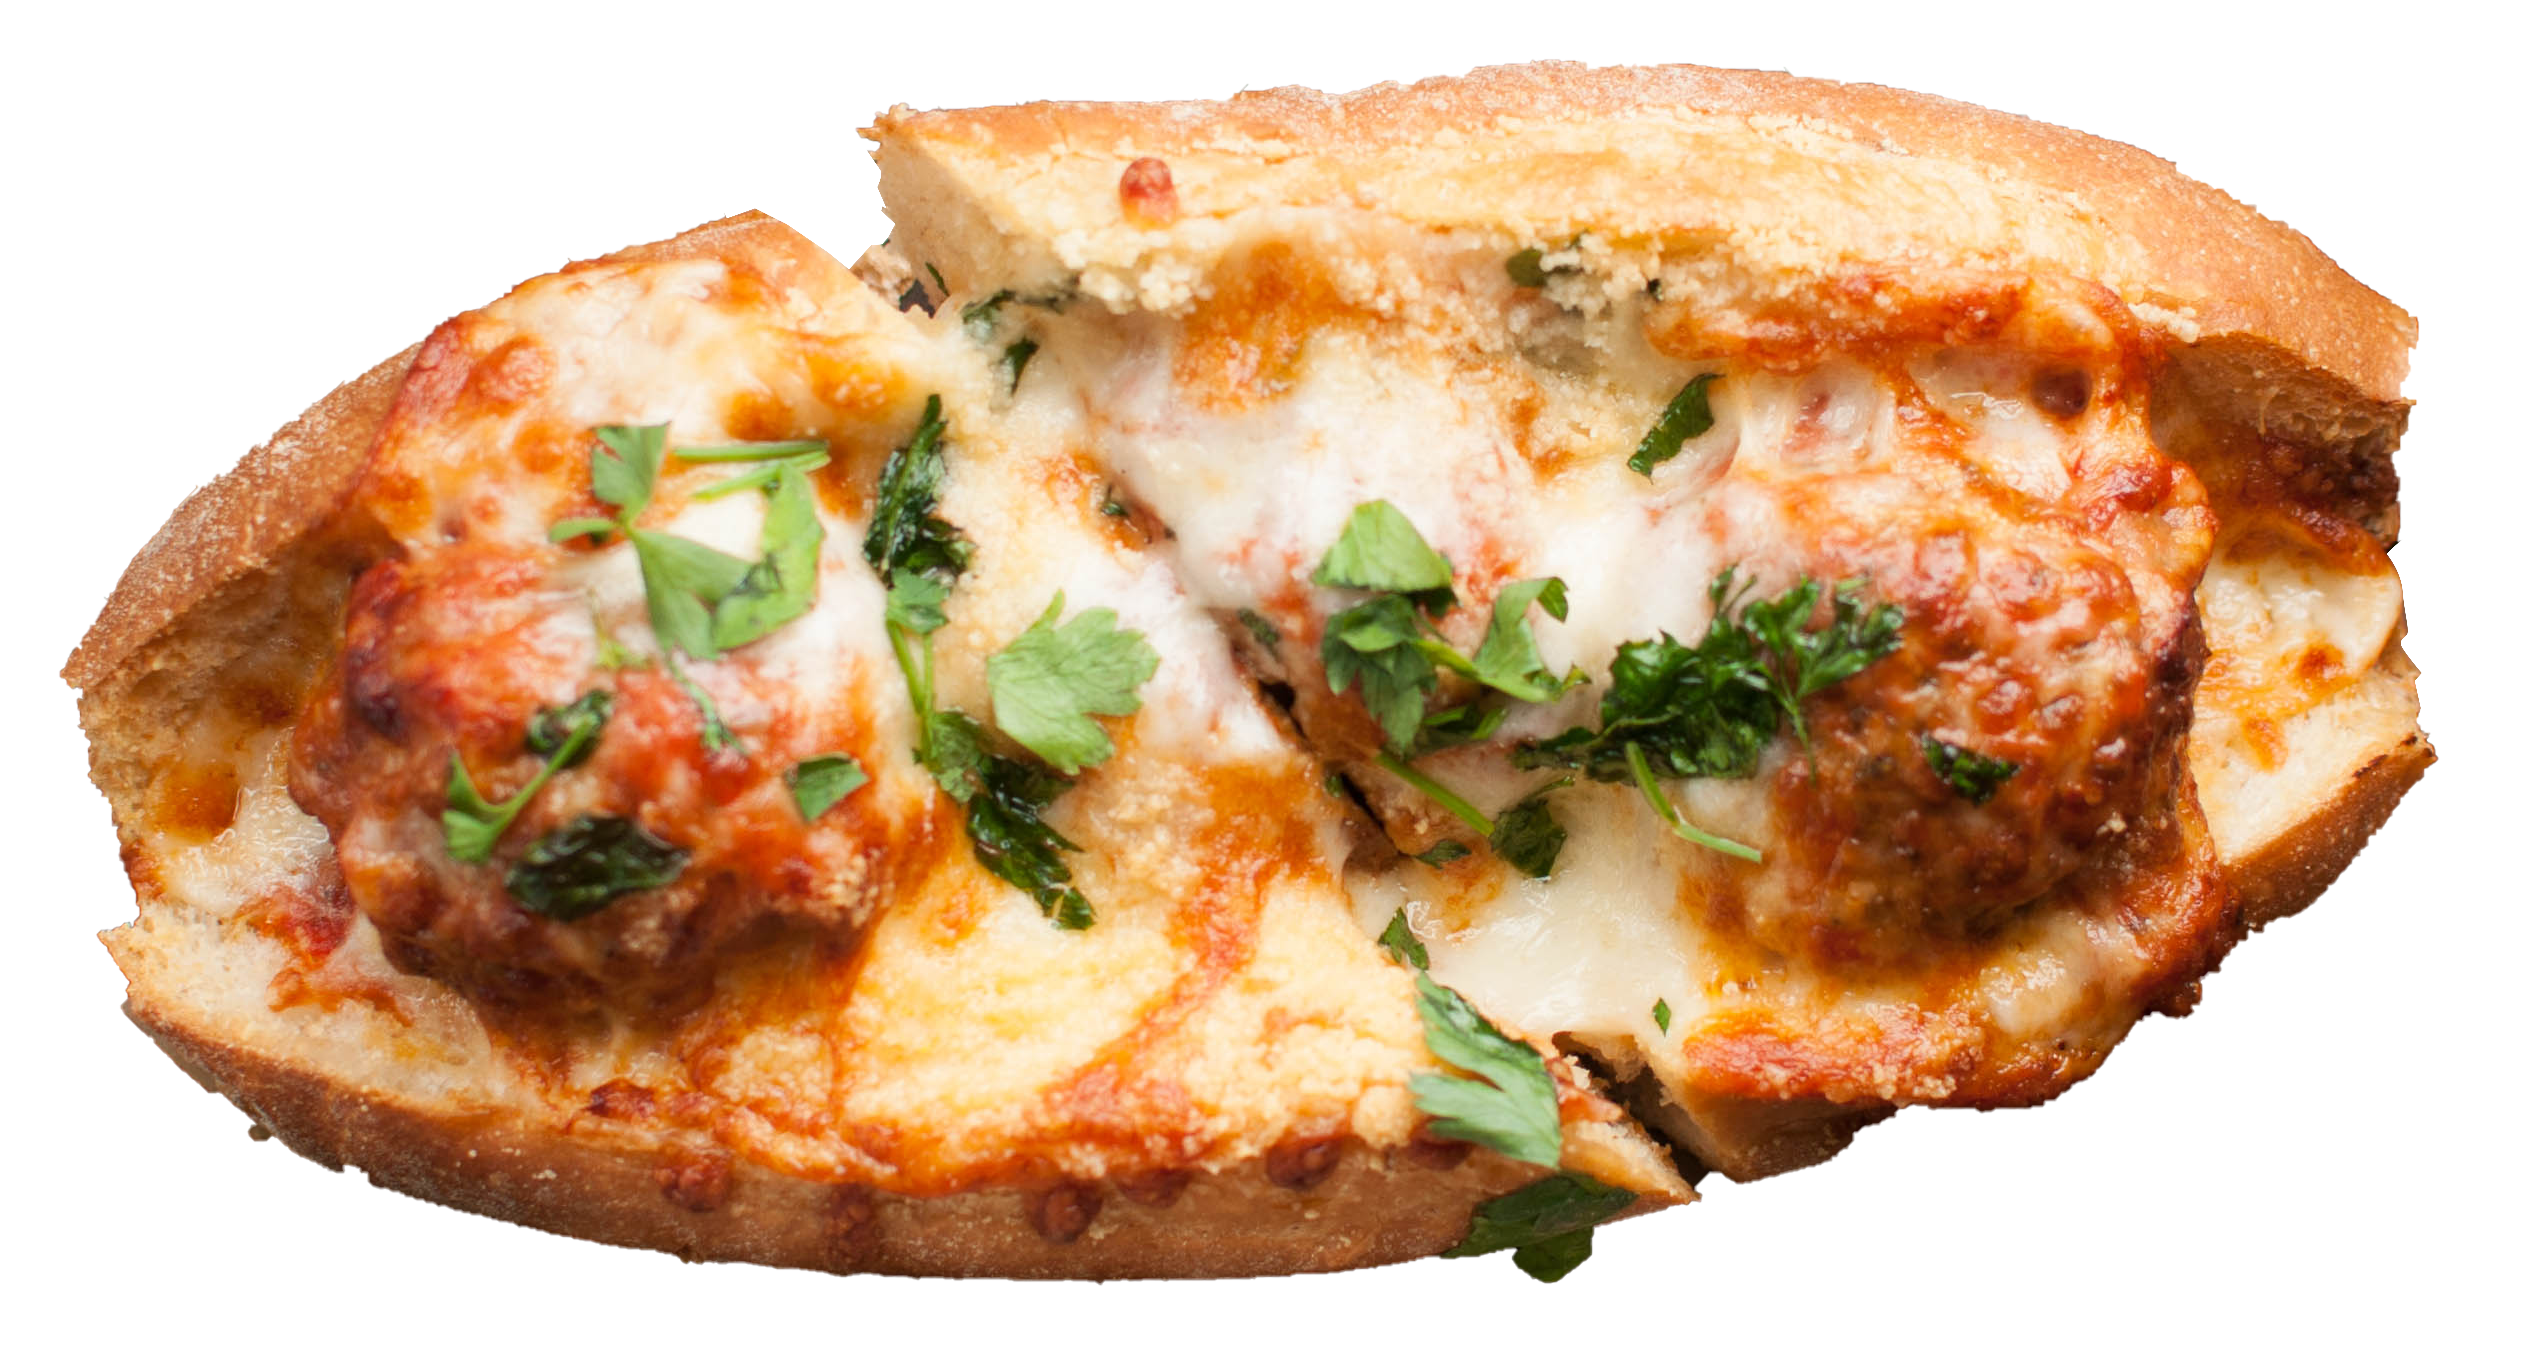 A picture of Twenty Fourth Pizza and meatballs delicious sandwich